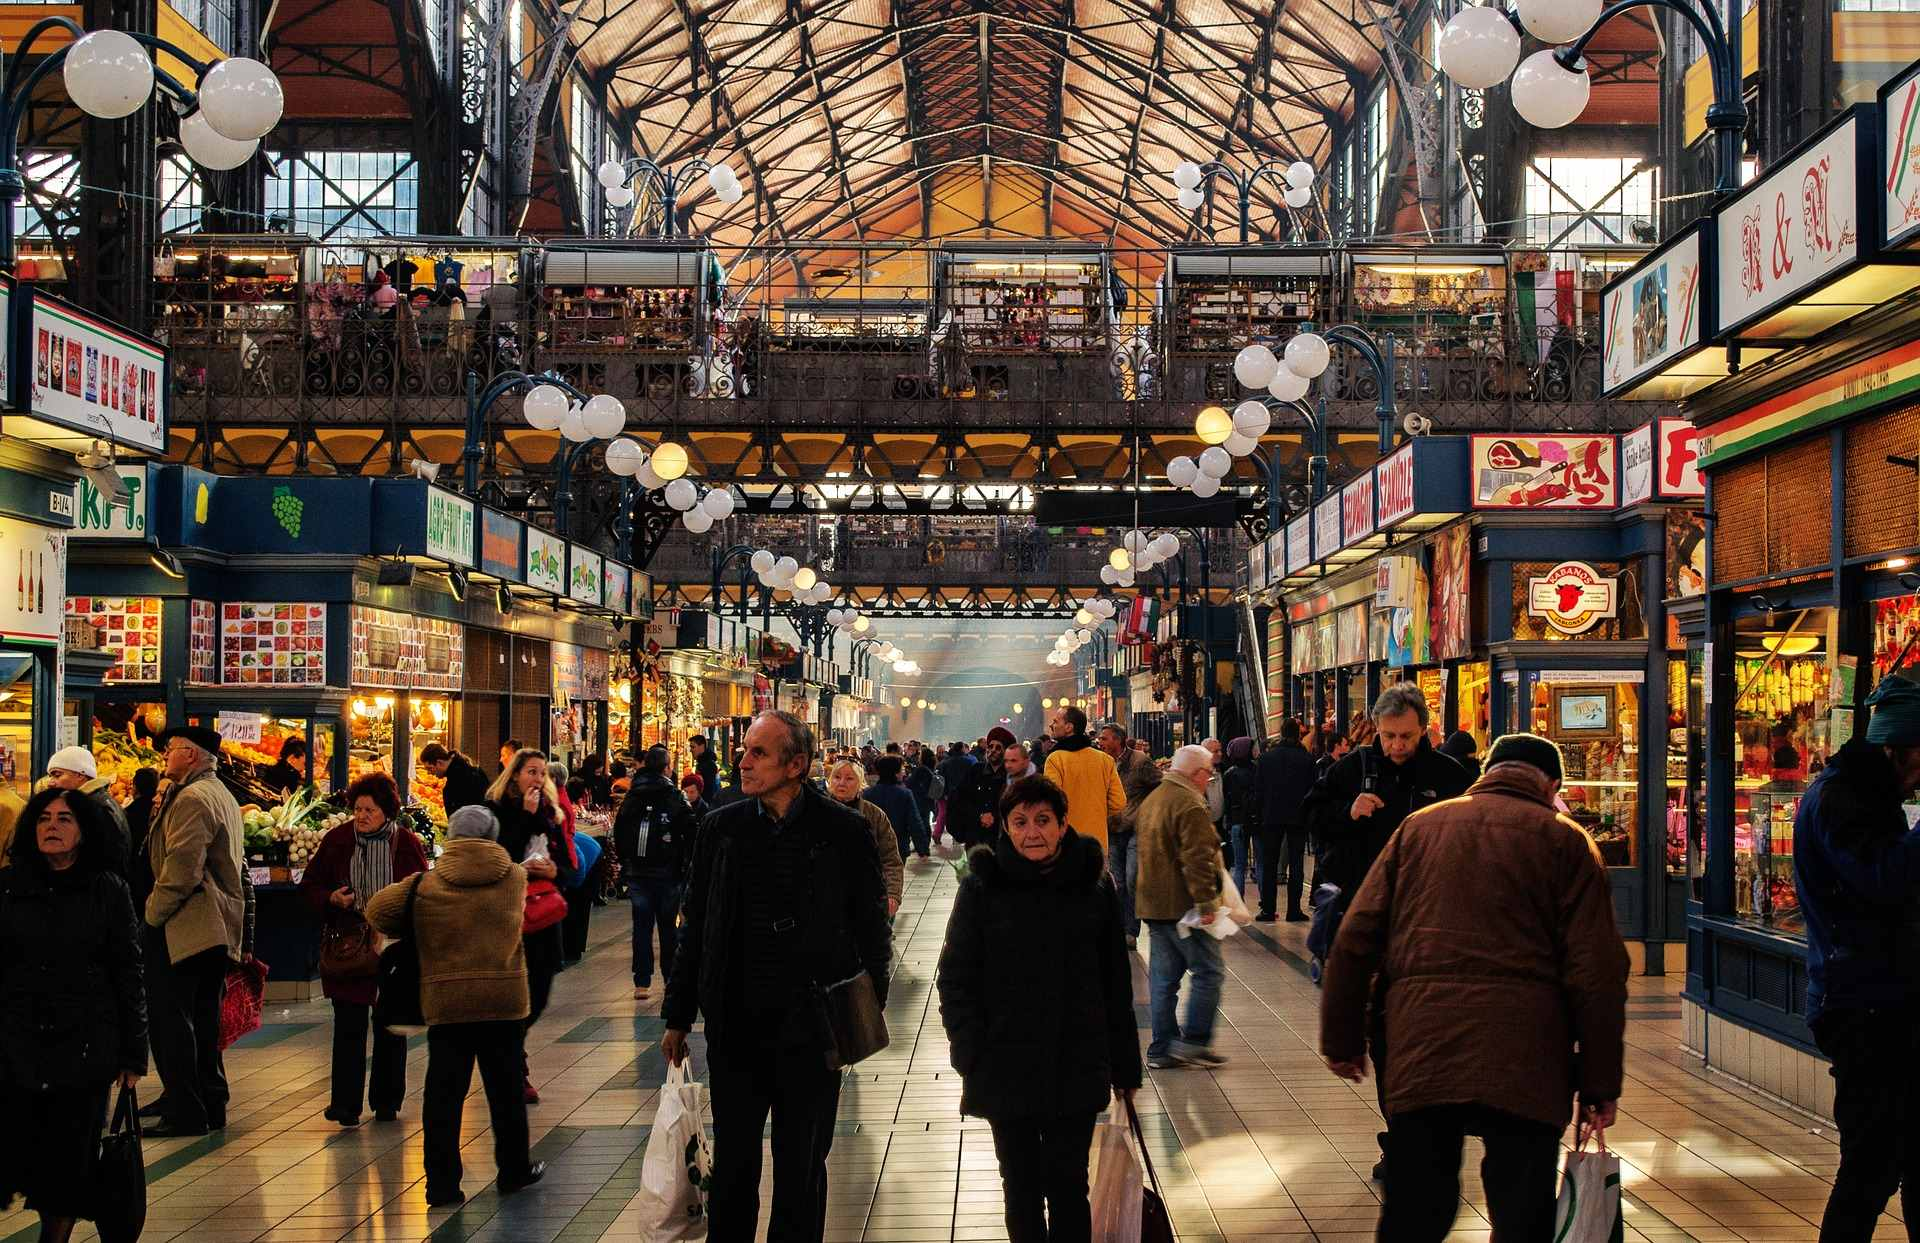 people-walking-through-busy-great-market-hall